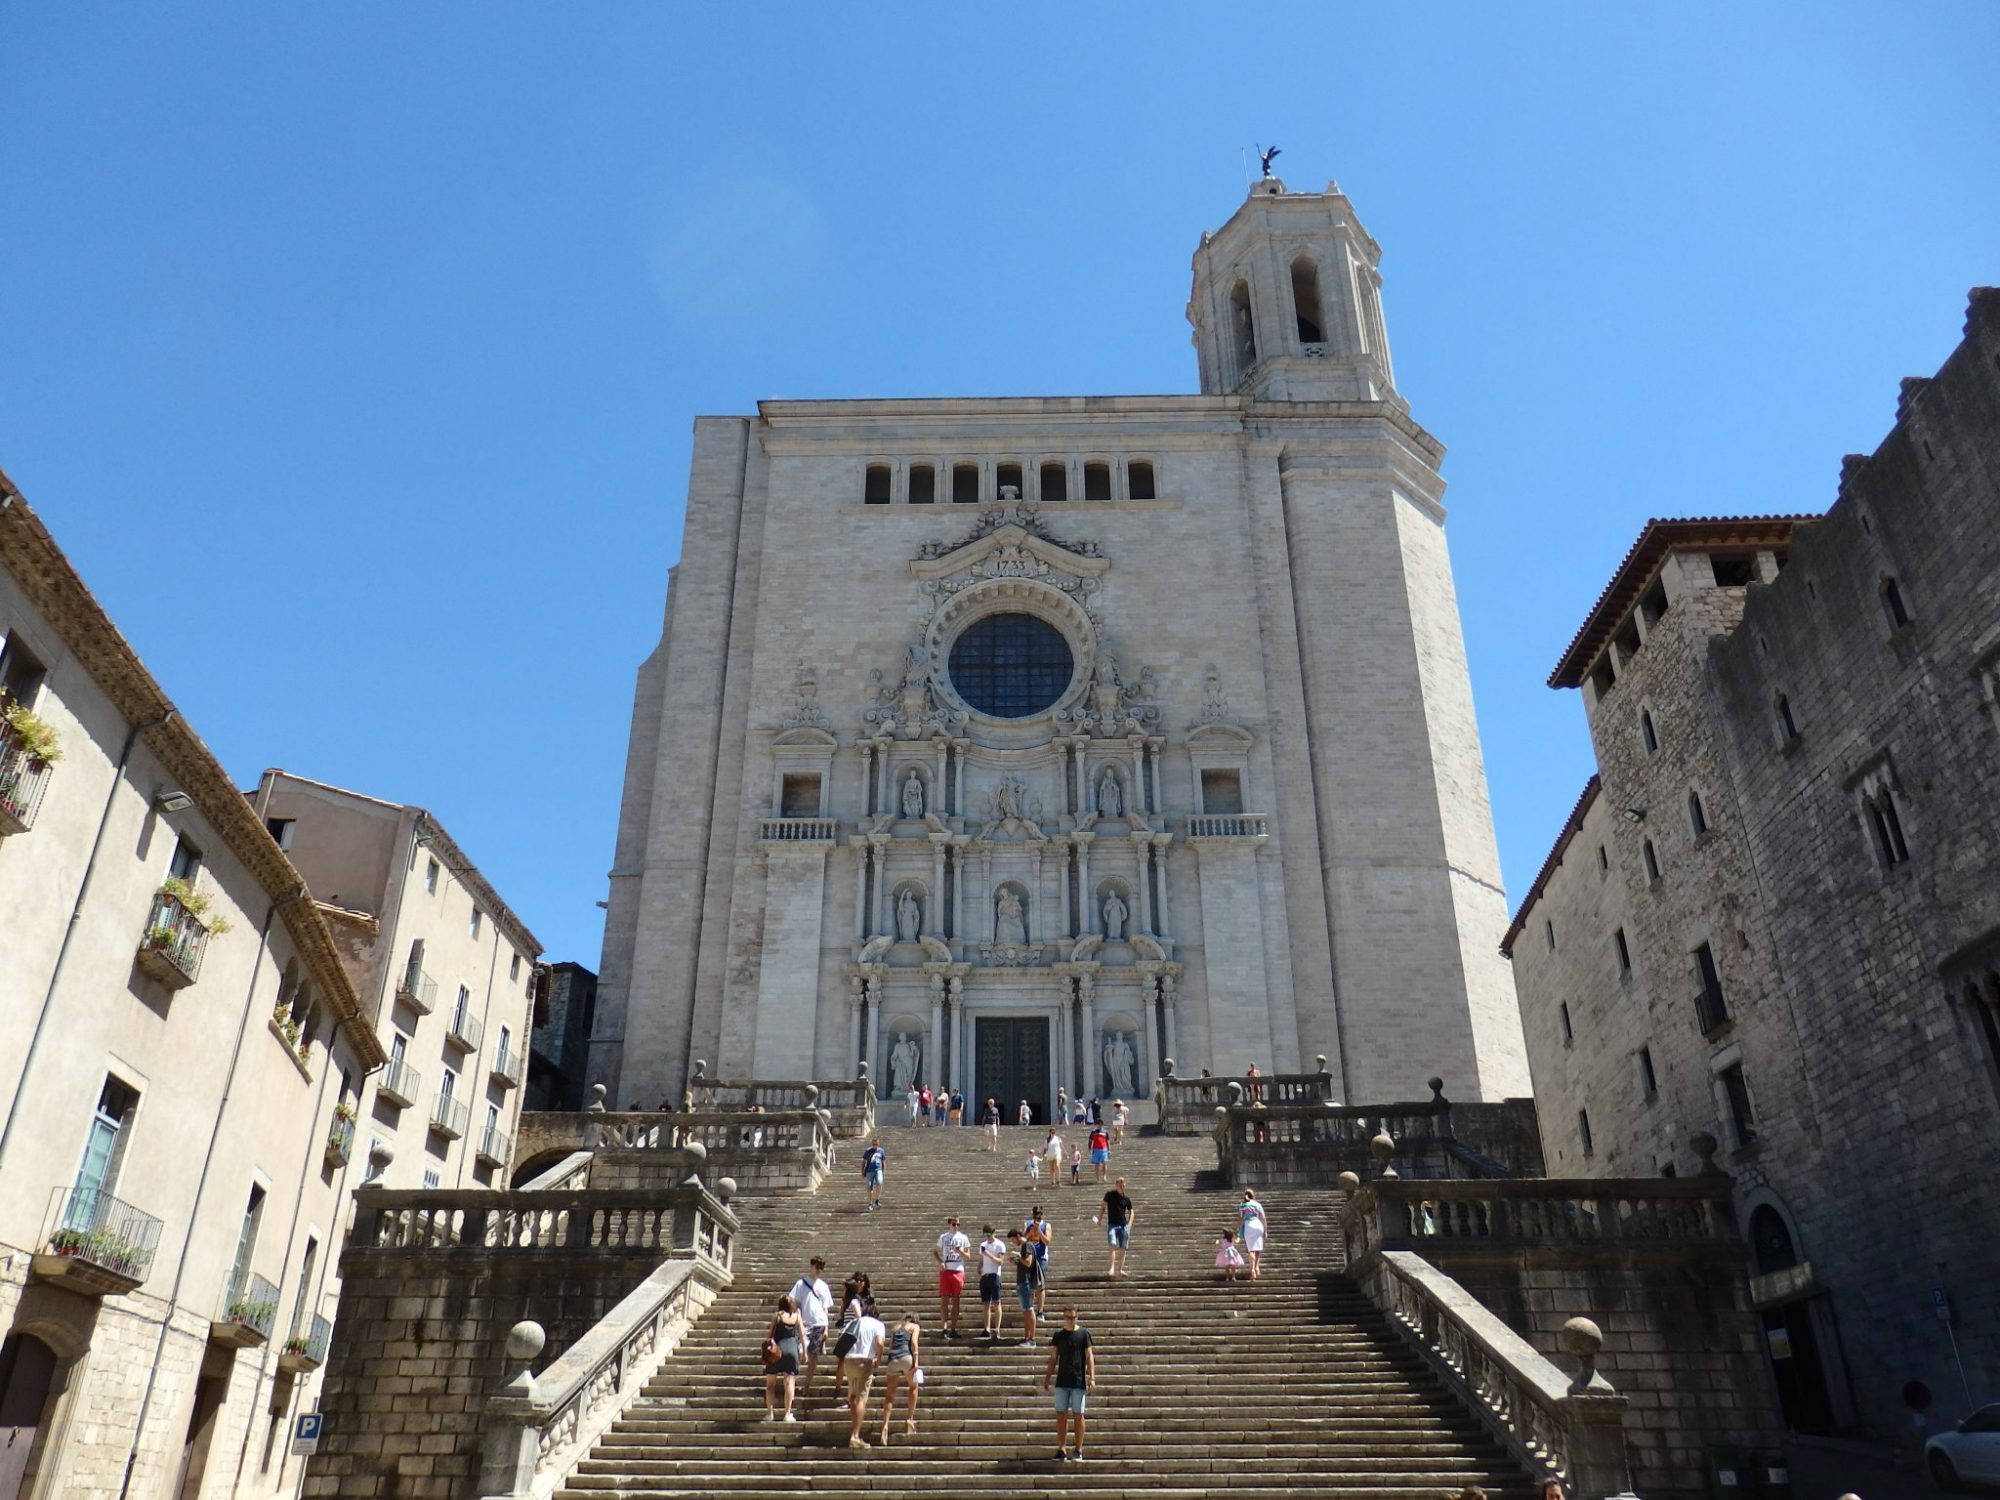 The cathedral, whose full name is the Cathedral of St. Mary of Girona